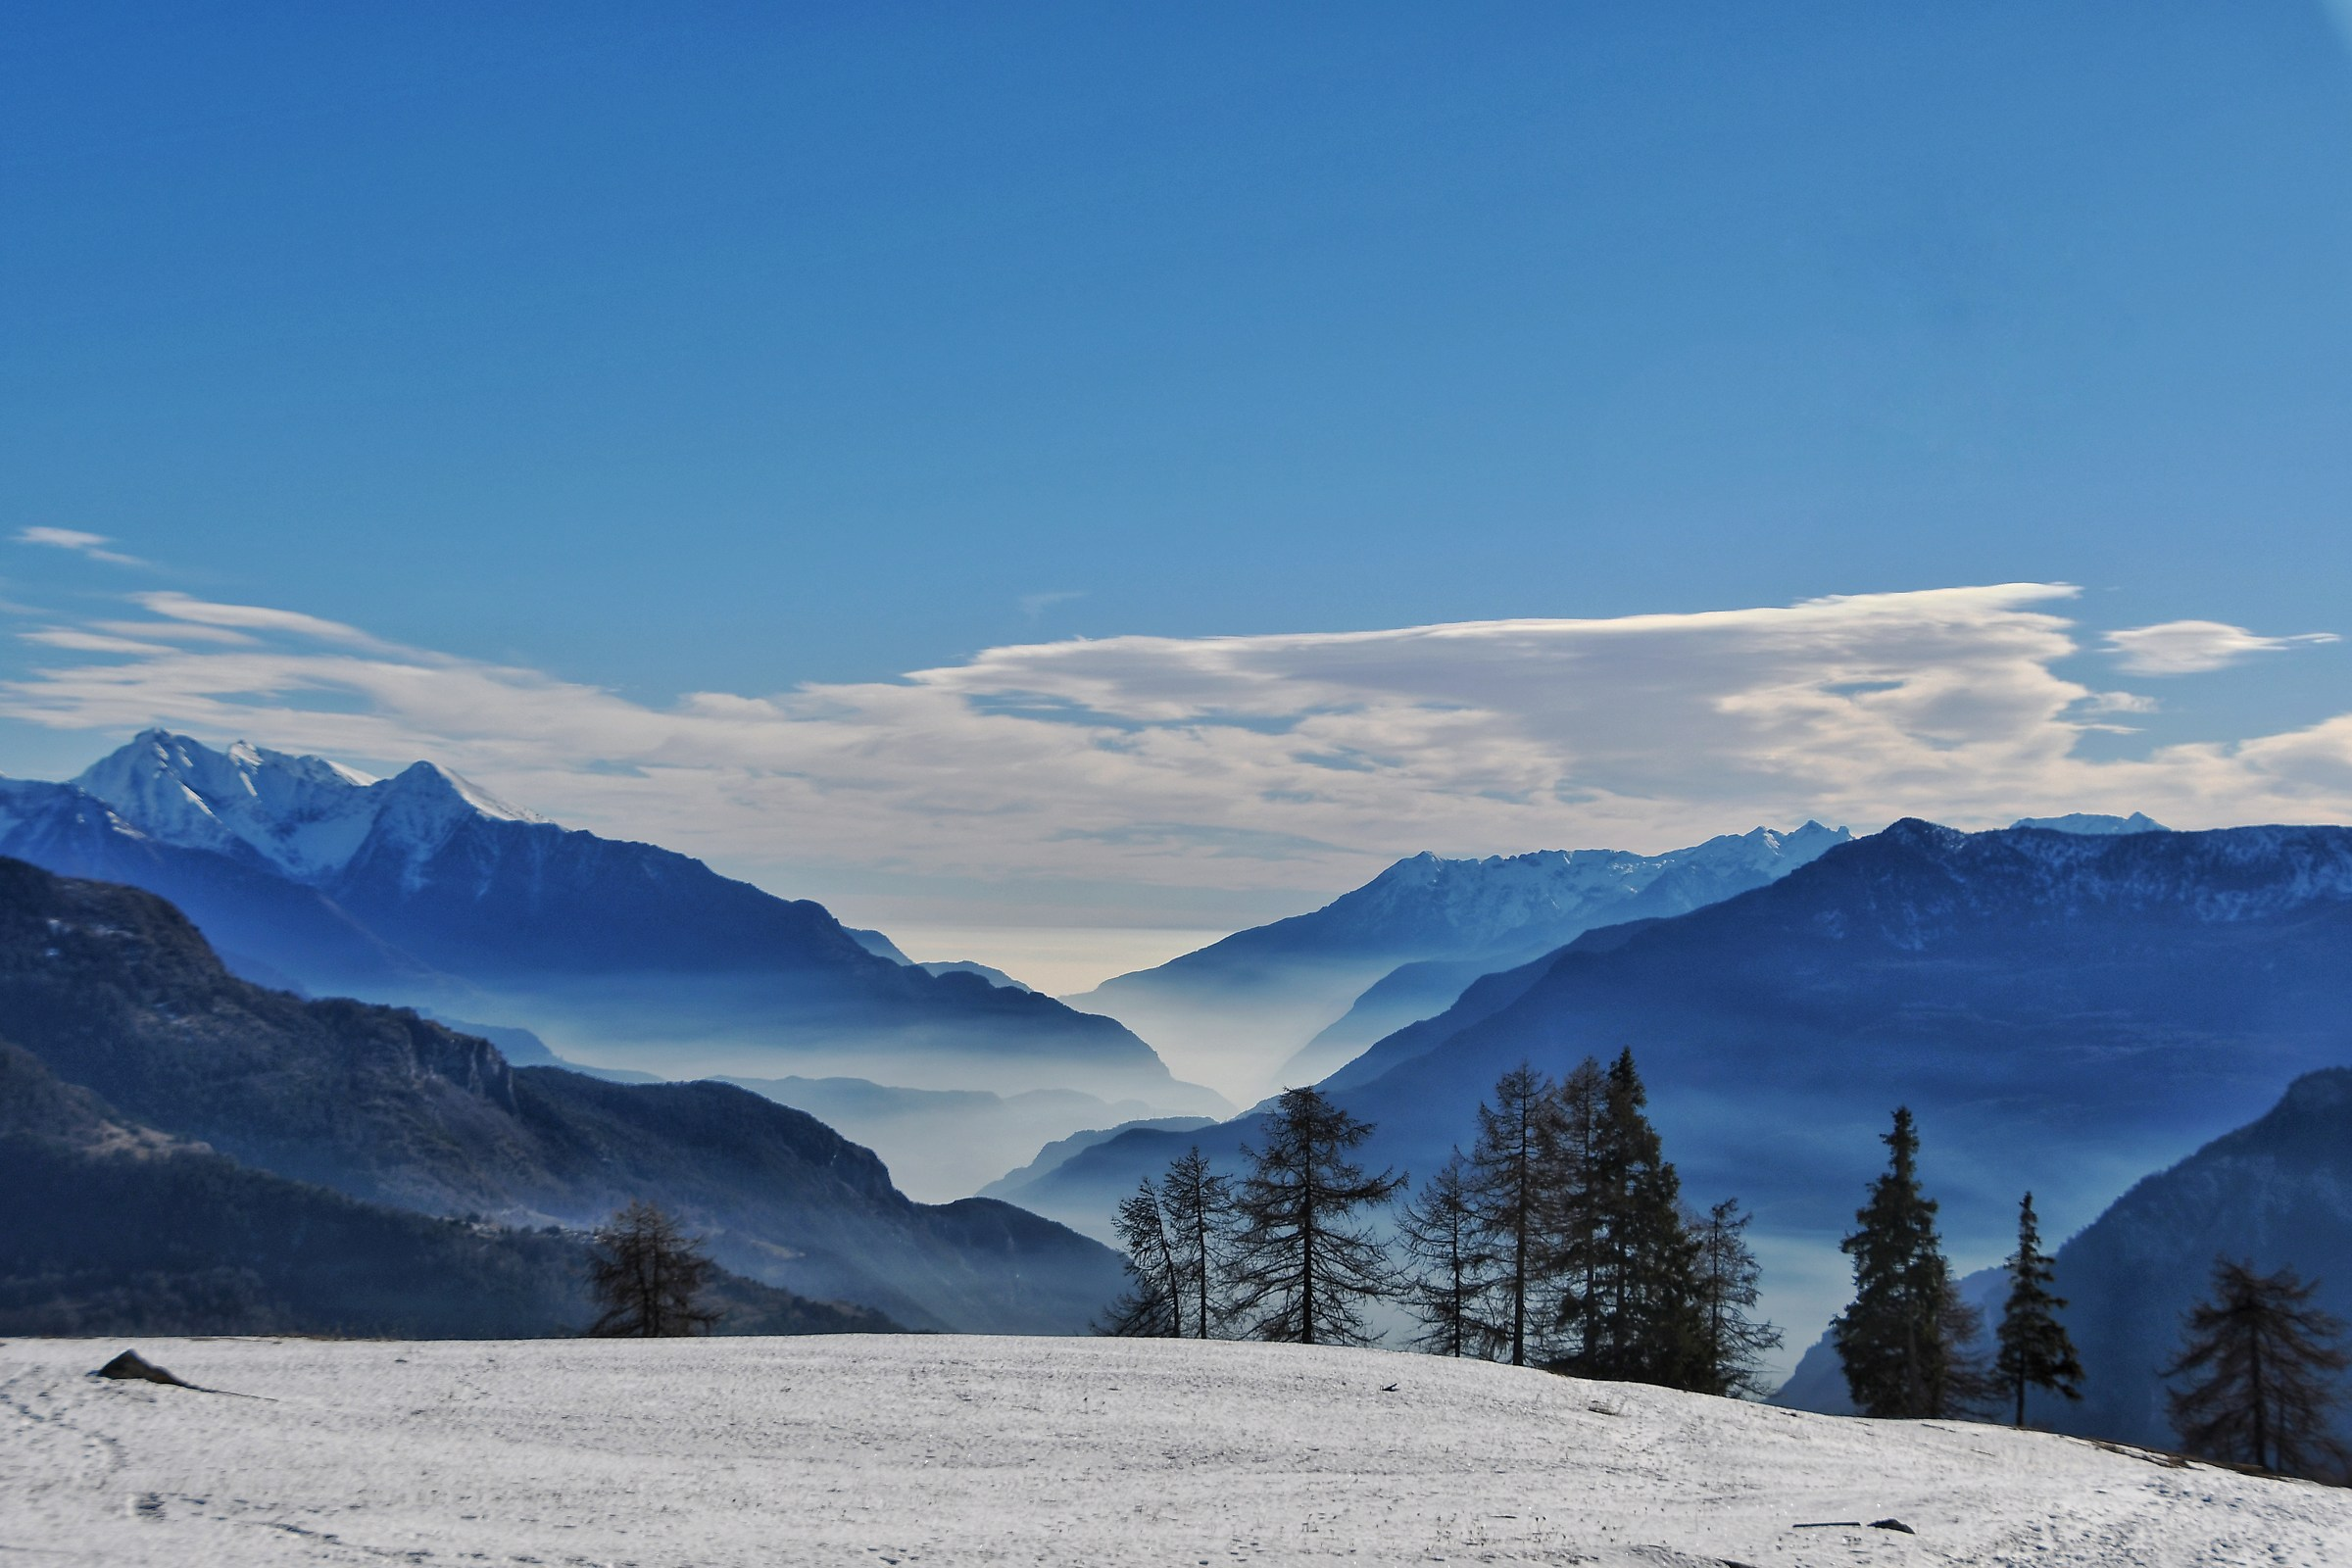 View from the surroundings of Torgnon (Valle d'aosta)...